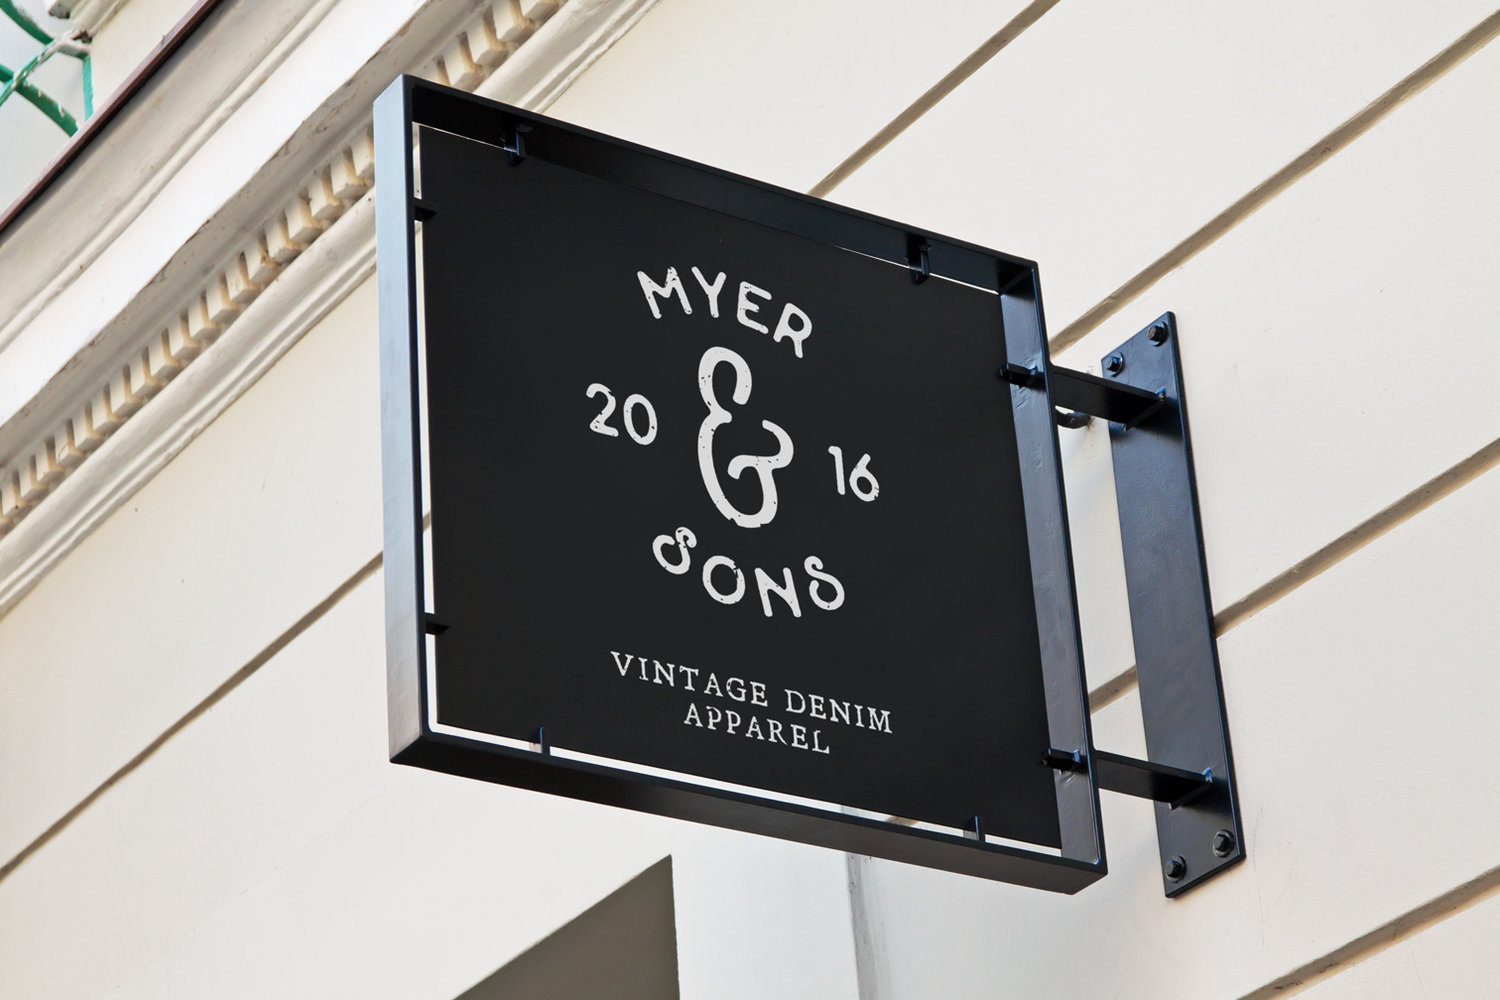 Signage for Myer and Sons vintage denim apparel